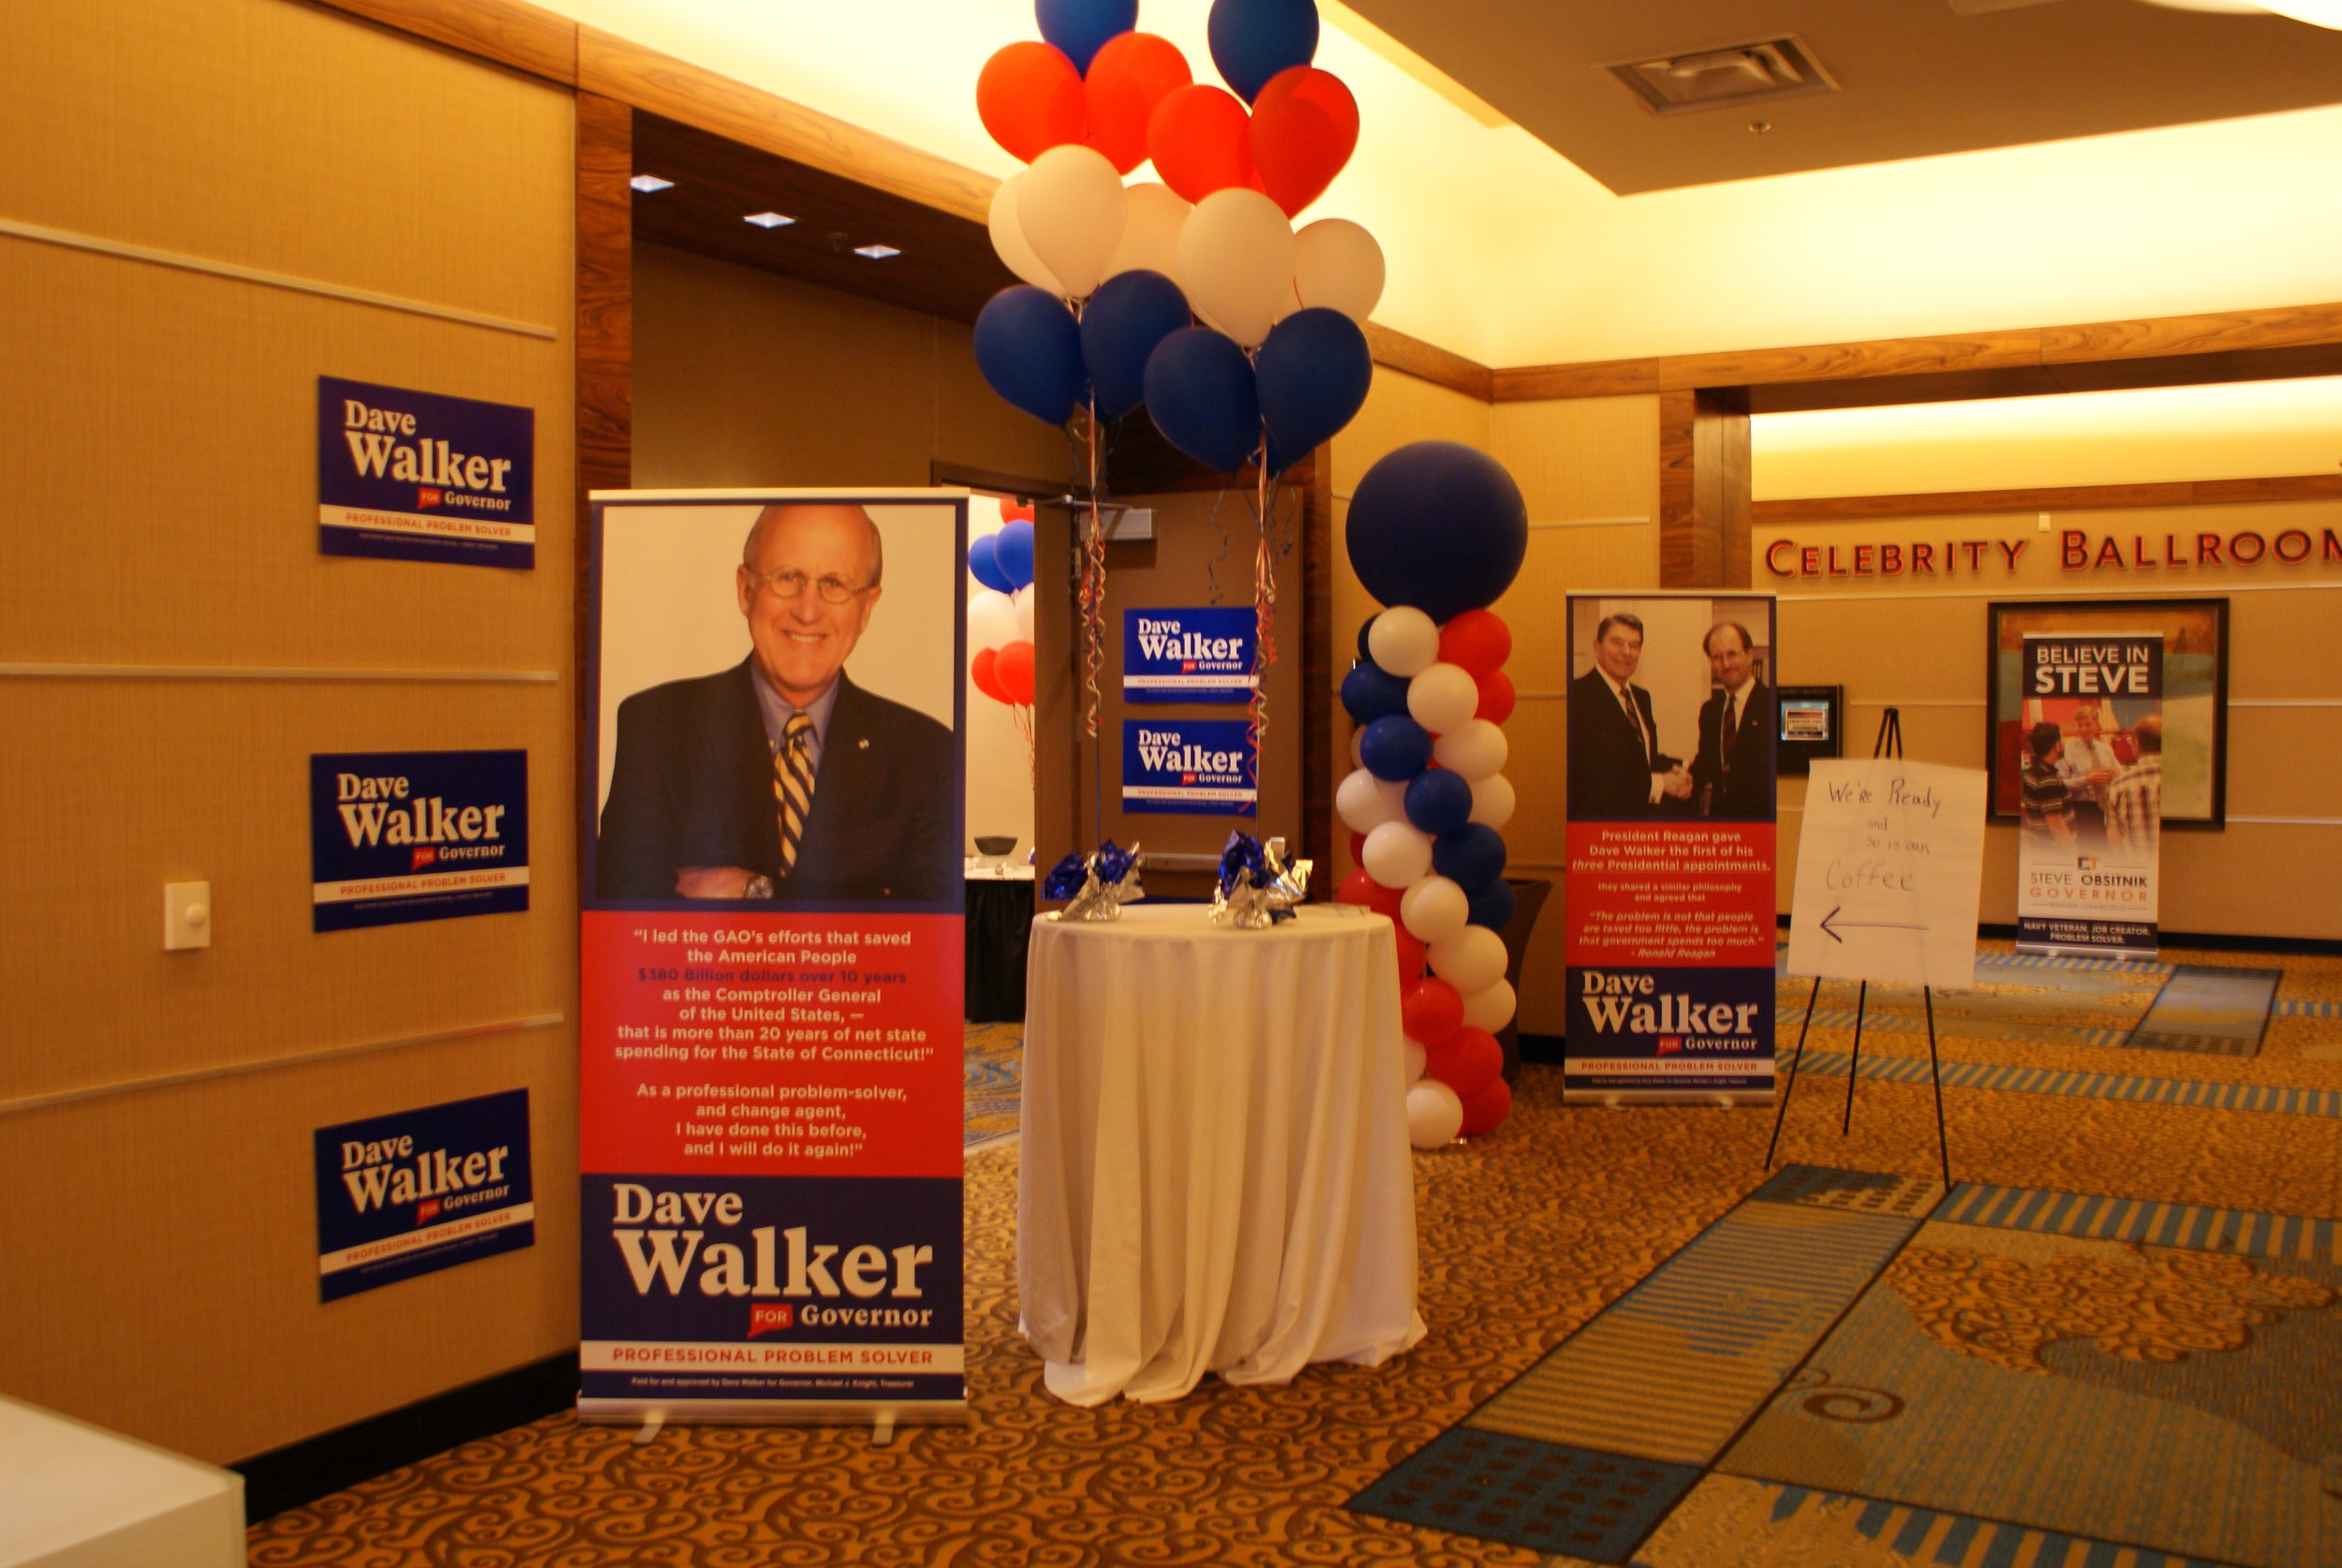 Former United States Comptroller Dave Walker and his staff welcomed delegates into his hospitality room throughout the day in hopes of gaining support.